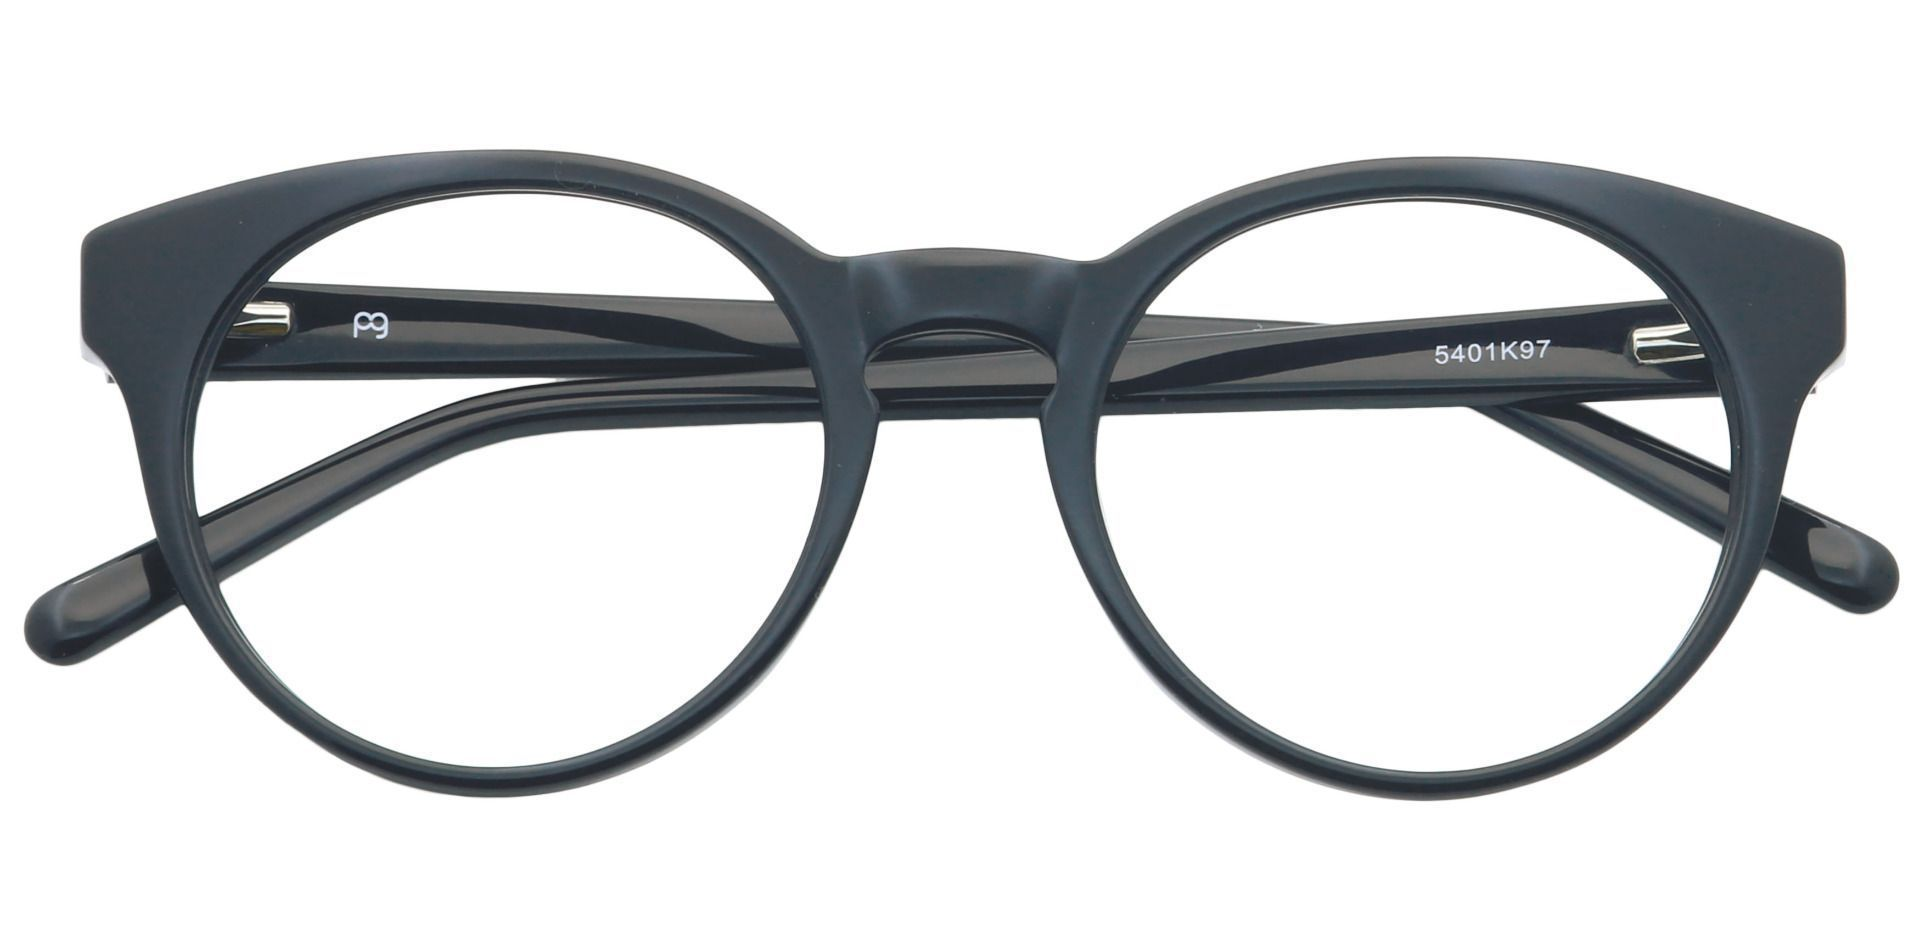 Hip Round Eyeglasses Frame - Shiny Black